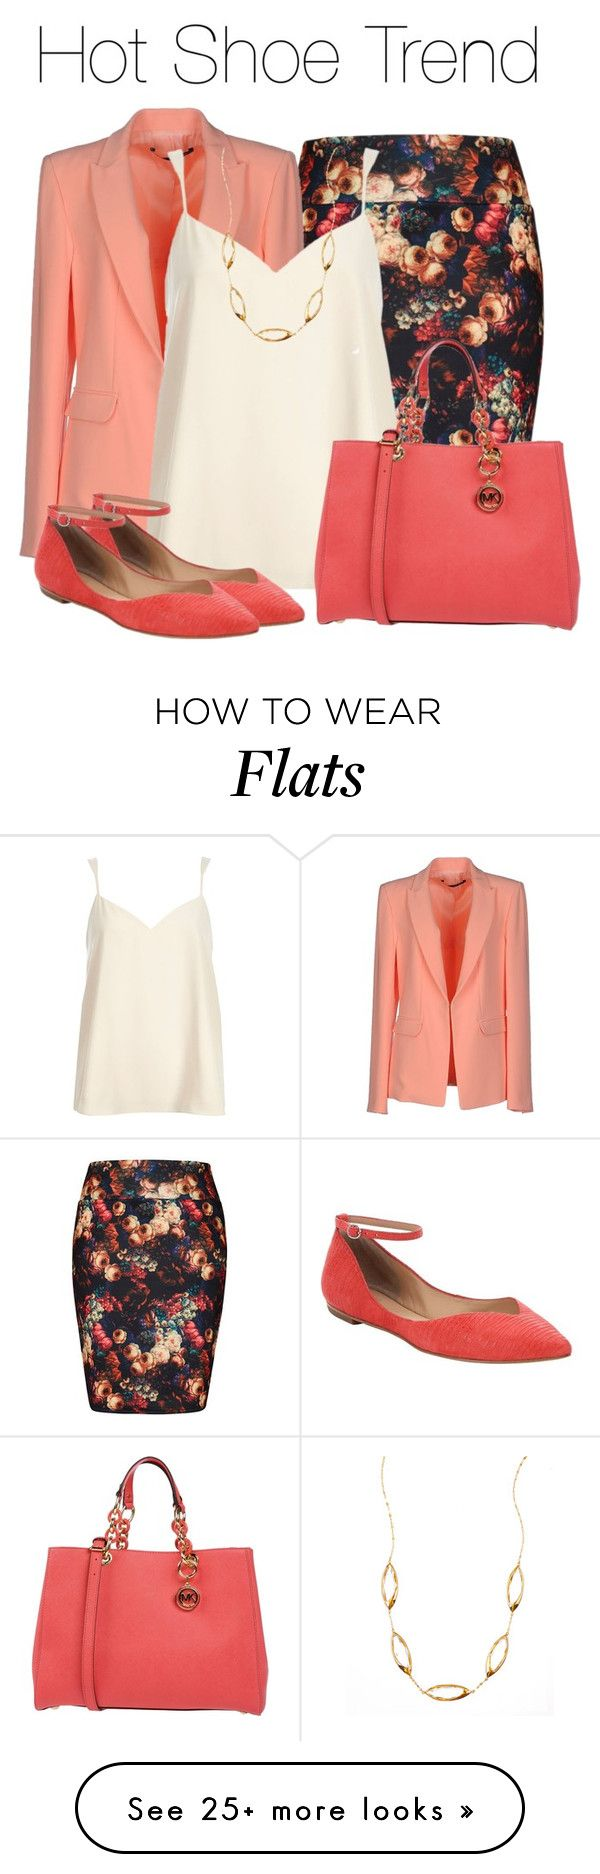 """So Stylish: Ankle Wrap Flats"" by earthlyangel on Polyvore featuring City Chic, Annarita N., River Island, belle by Sigerson Morrison, MICHAEL Michael Kors, Lana, contest and anklewrapflats"